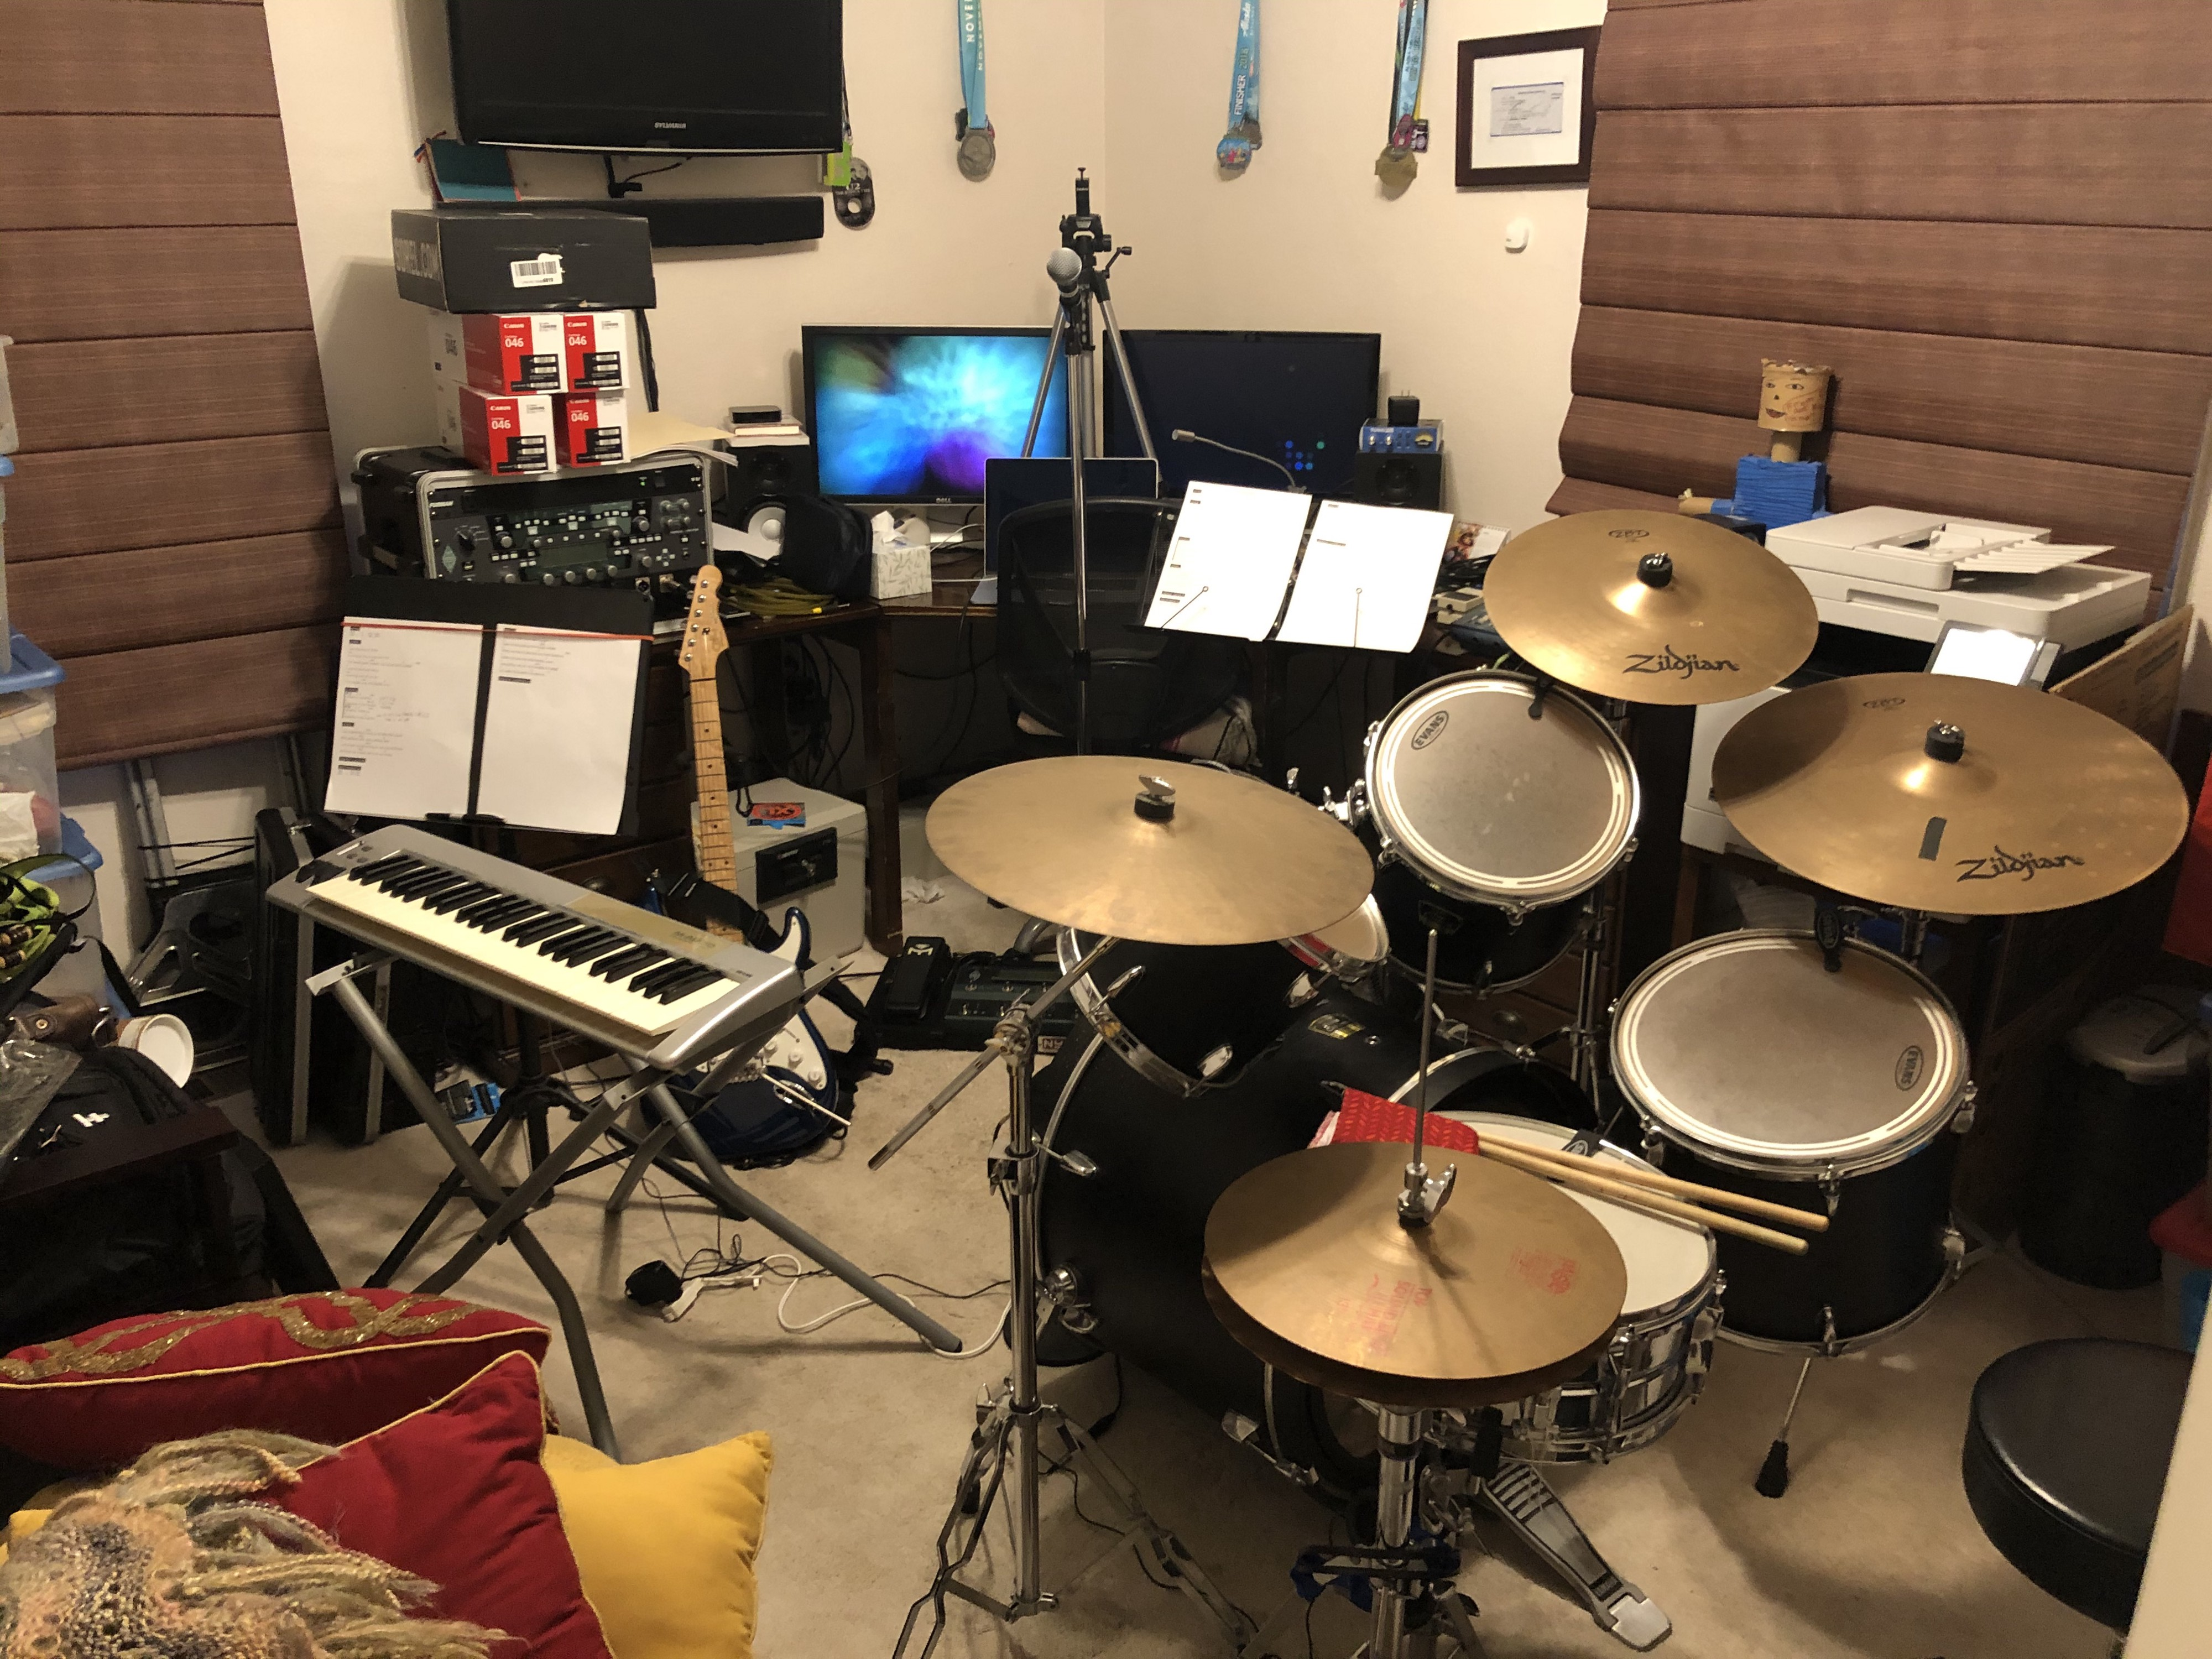 Drums, keyboard, guitar, camera, and computer fit into small room.